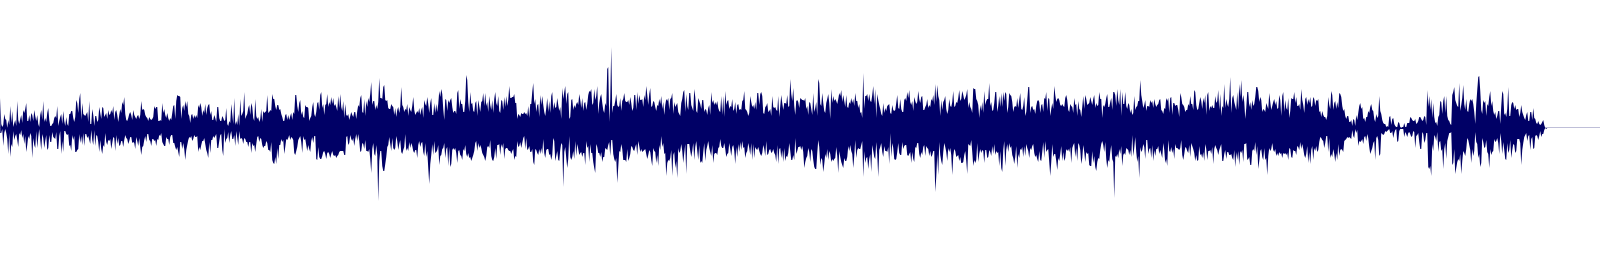 waveform of track #108246